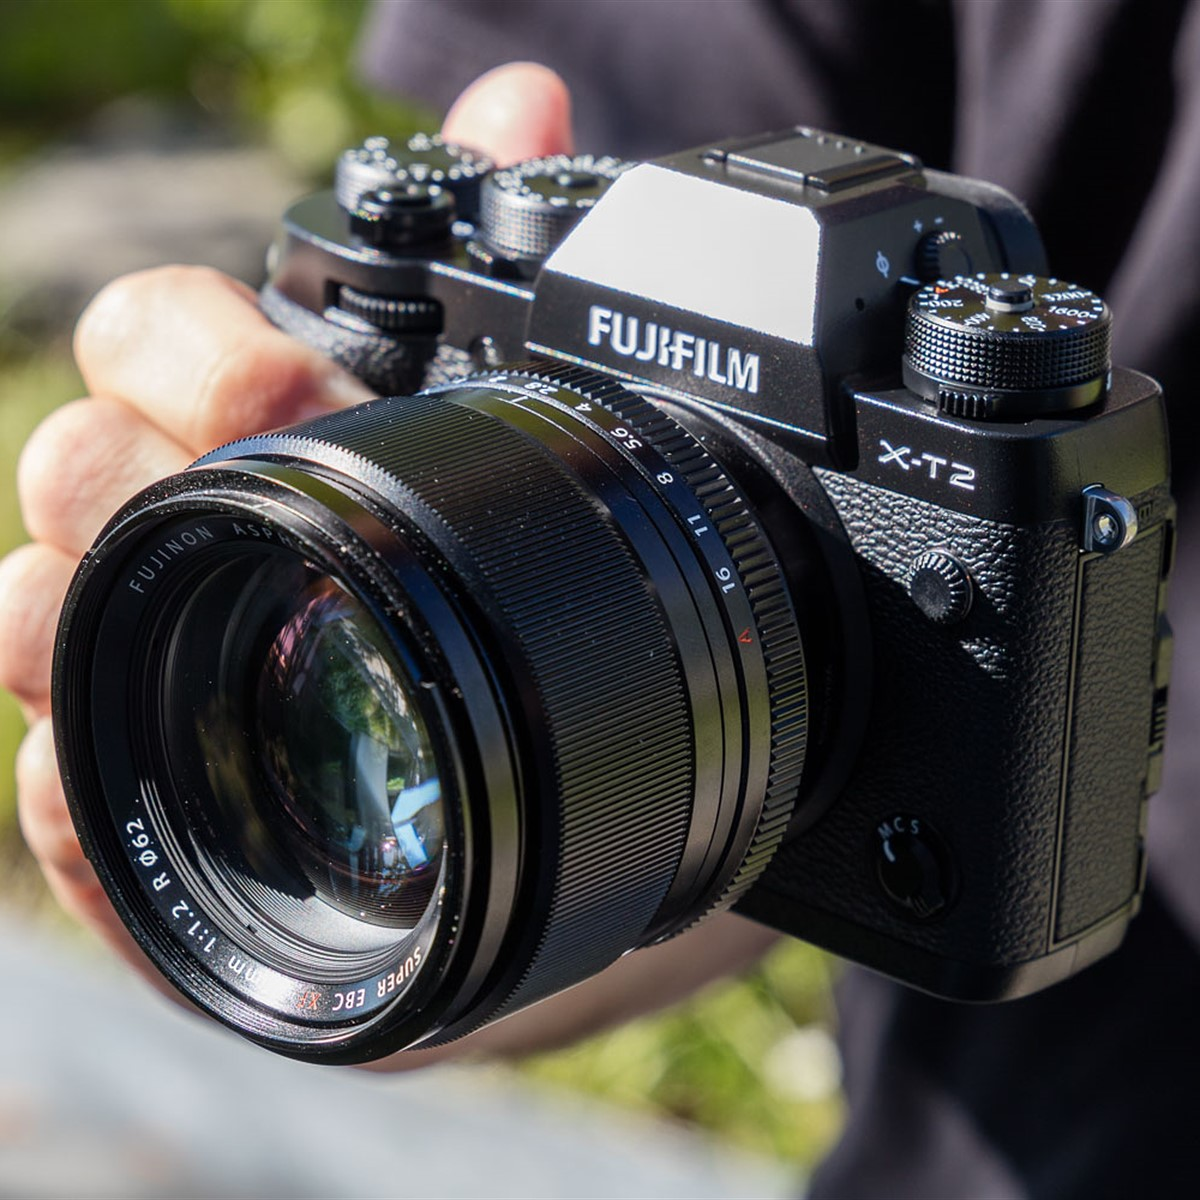 Faster Flagship Hands On With The Fujifilm X T2 Digital Xt2 Body Only Photography Review